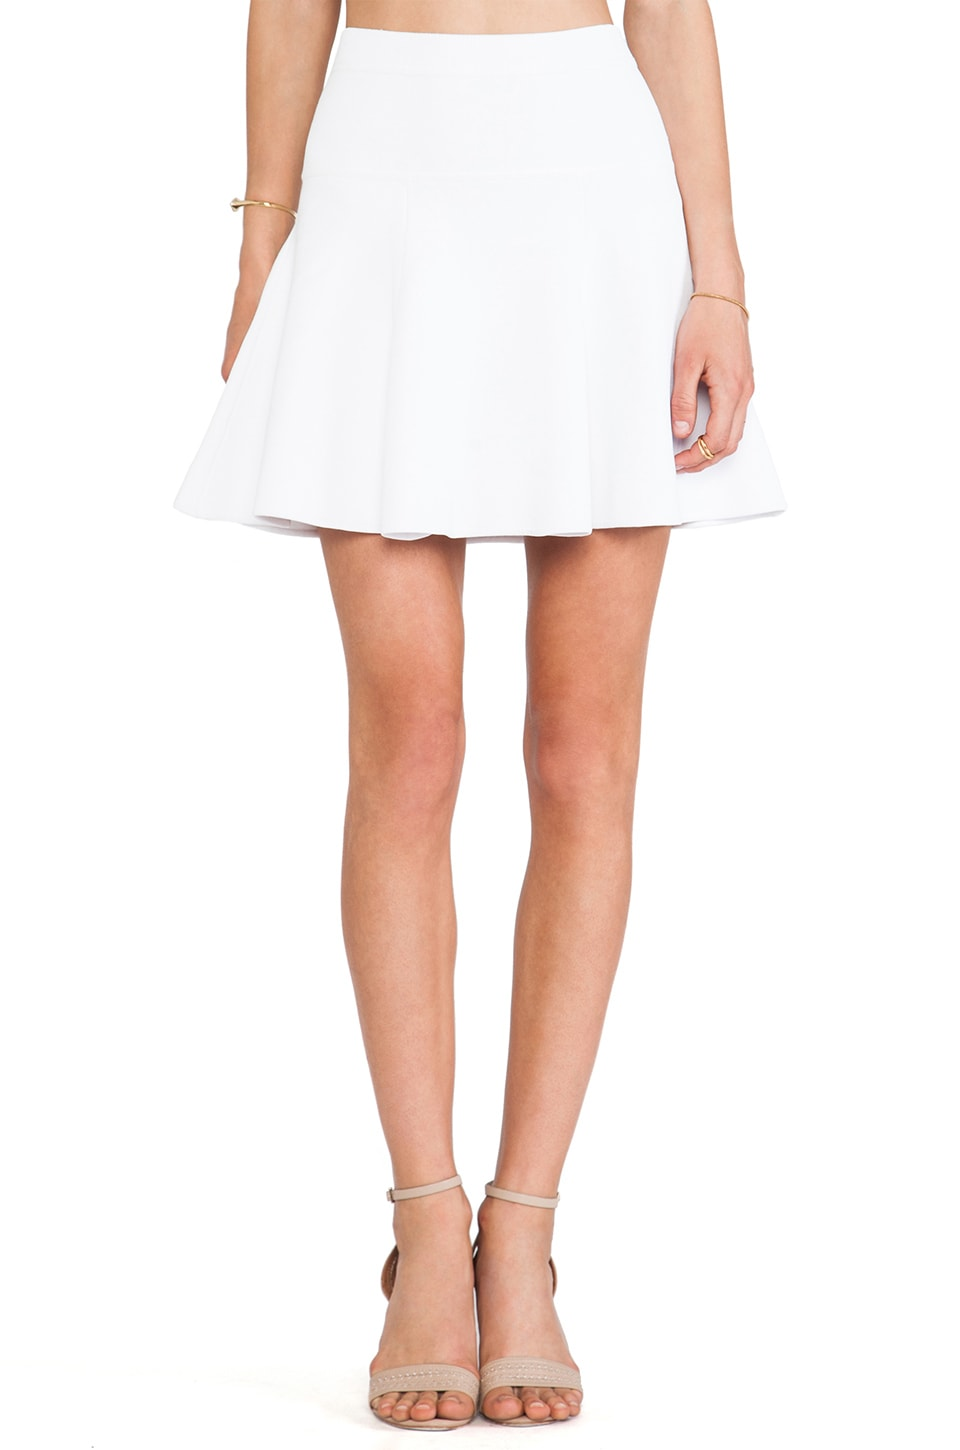 A.L.C. Connor Skirt in White